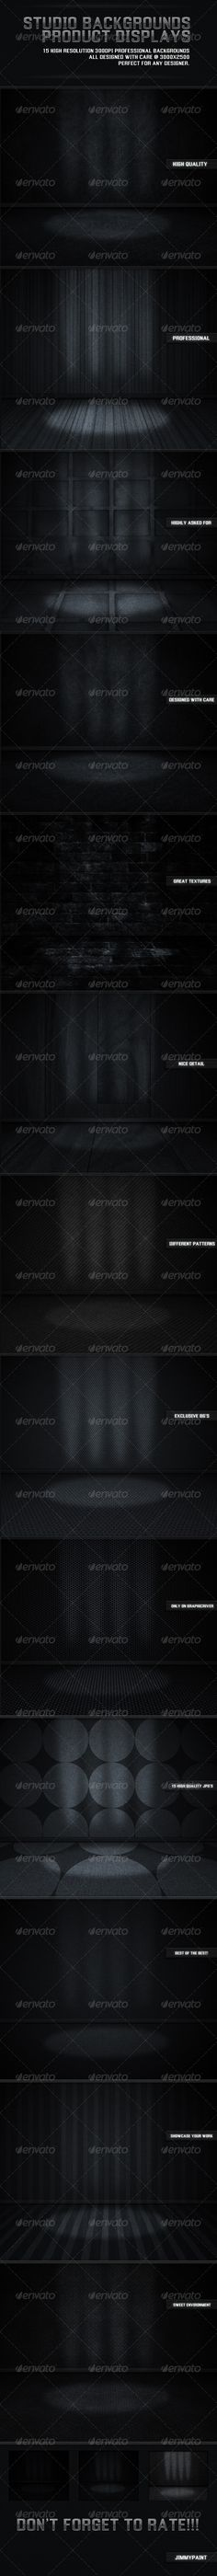 Studio Backgrounds Product Displays   #GraphicRiver        Studio Background Product Displays by JimmyPaint Beautiful dark studio display backgrounds and backdrops. Center spotlight design to showcase your work. These backgrounds come in handy when designing different stage environments to display products, photos and text. These backgrounds utilize different shades of black, gray and white leaving you a clean solid neutral finish. They also have details all along the back walls which varies…